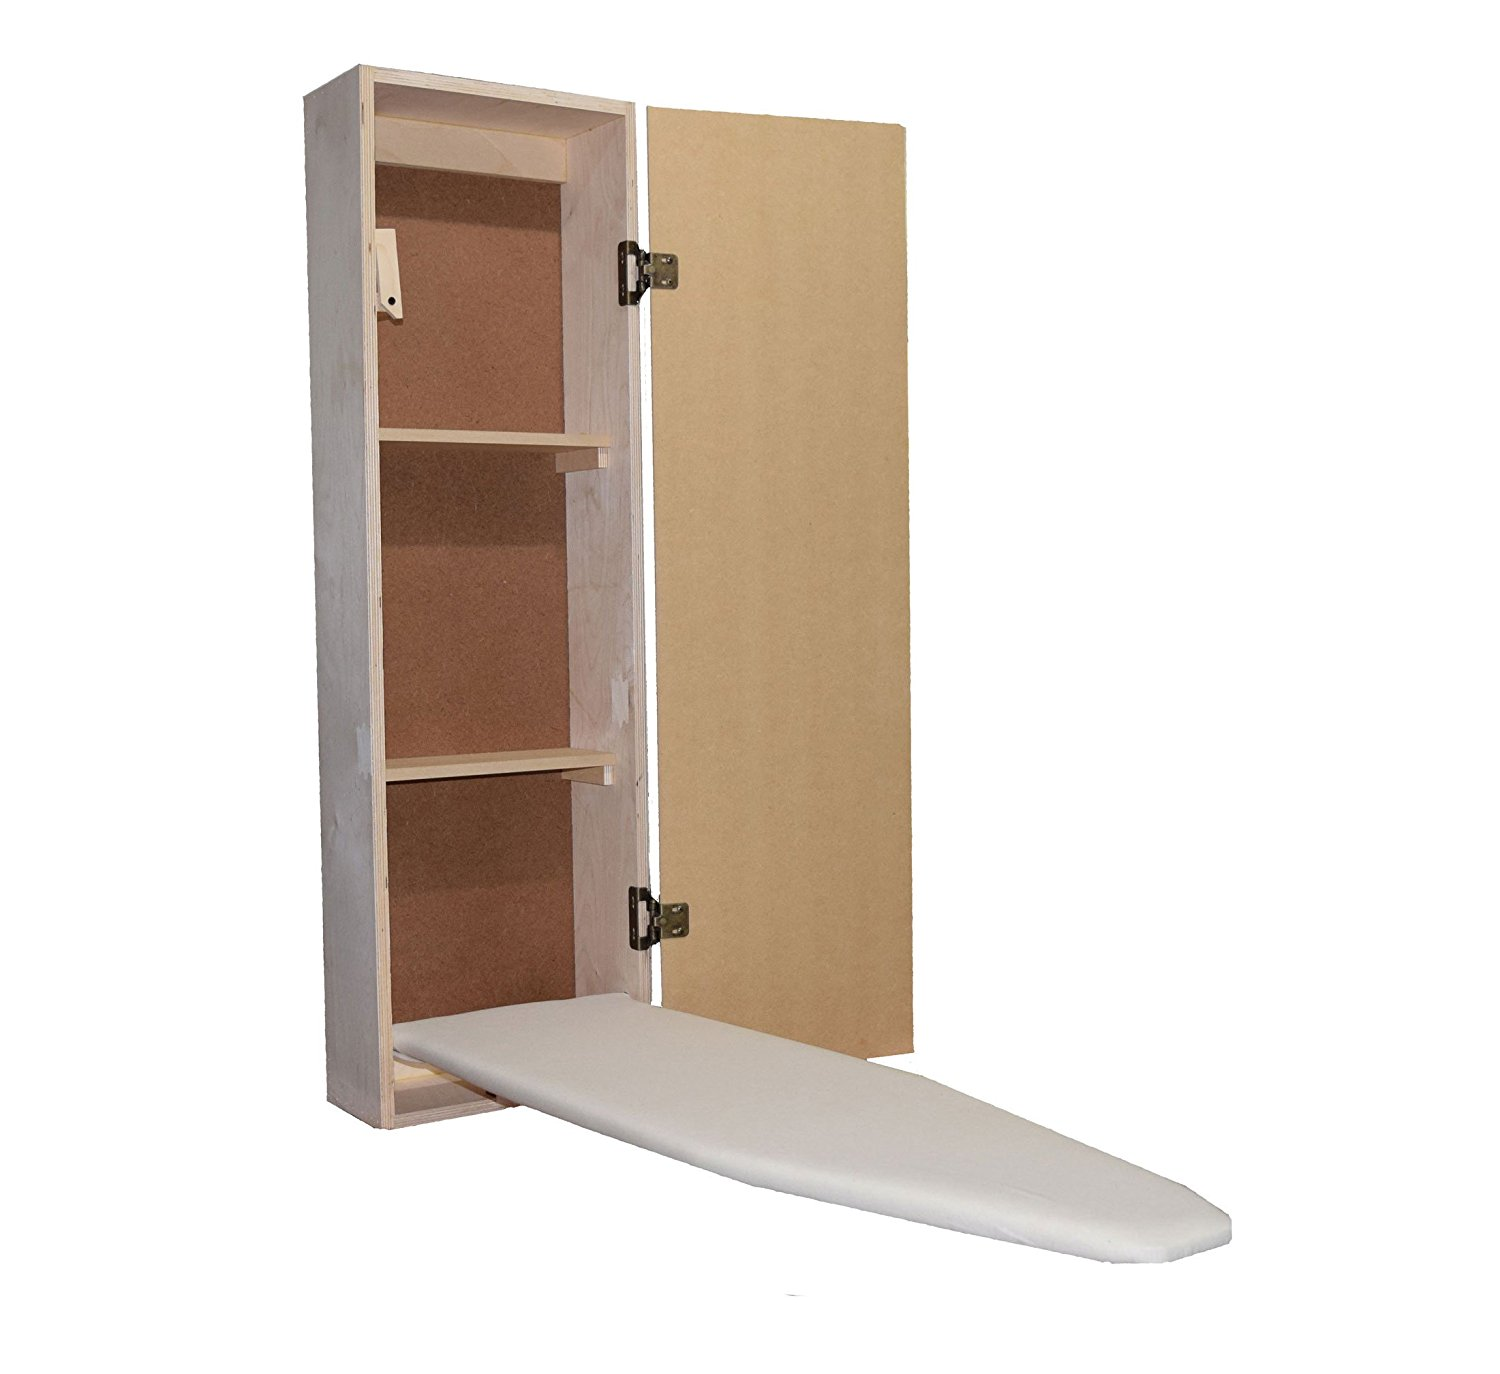 Xabitat Wall Mounted Ironing Board